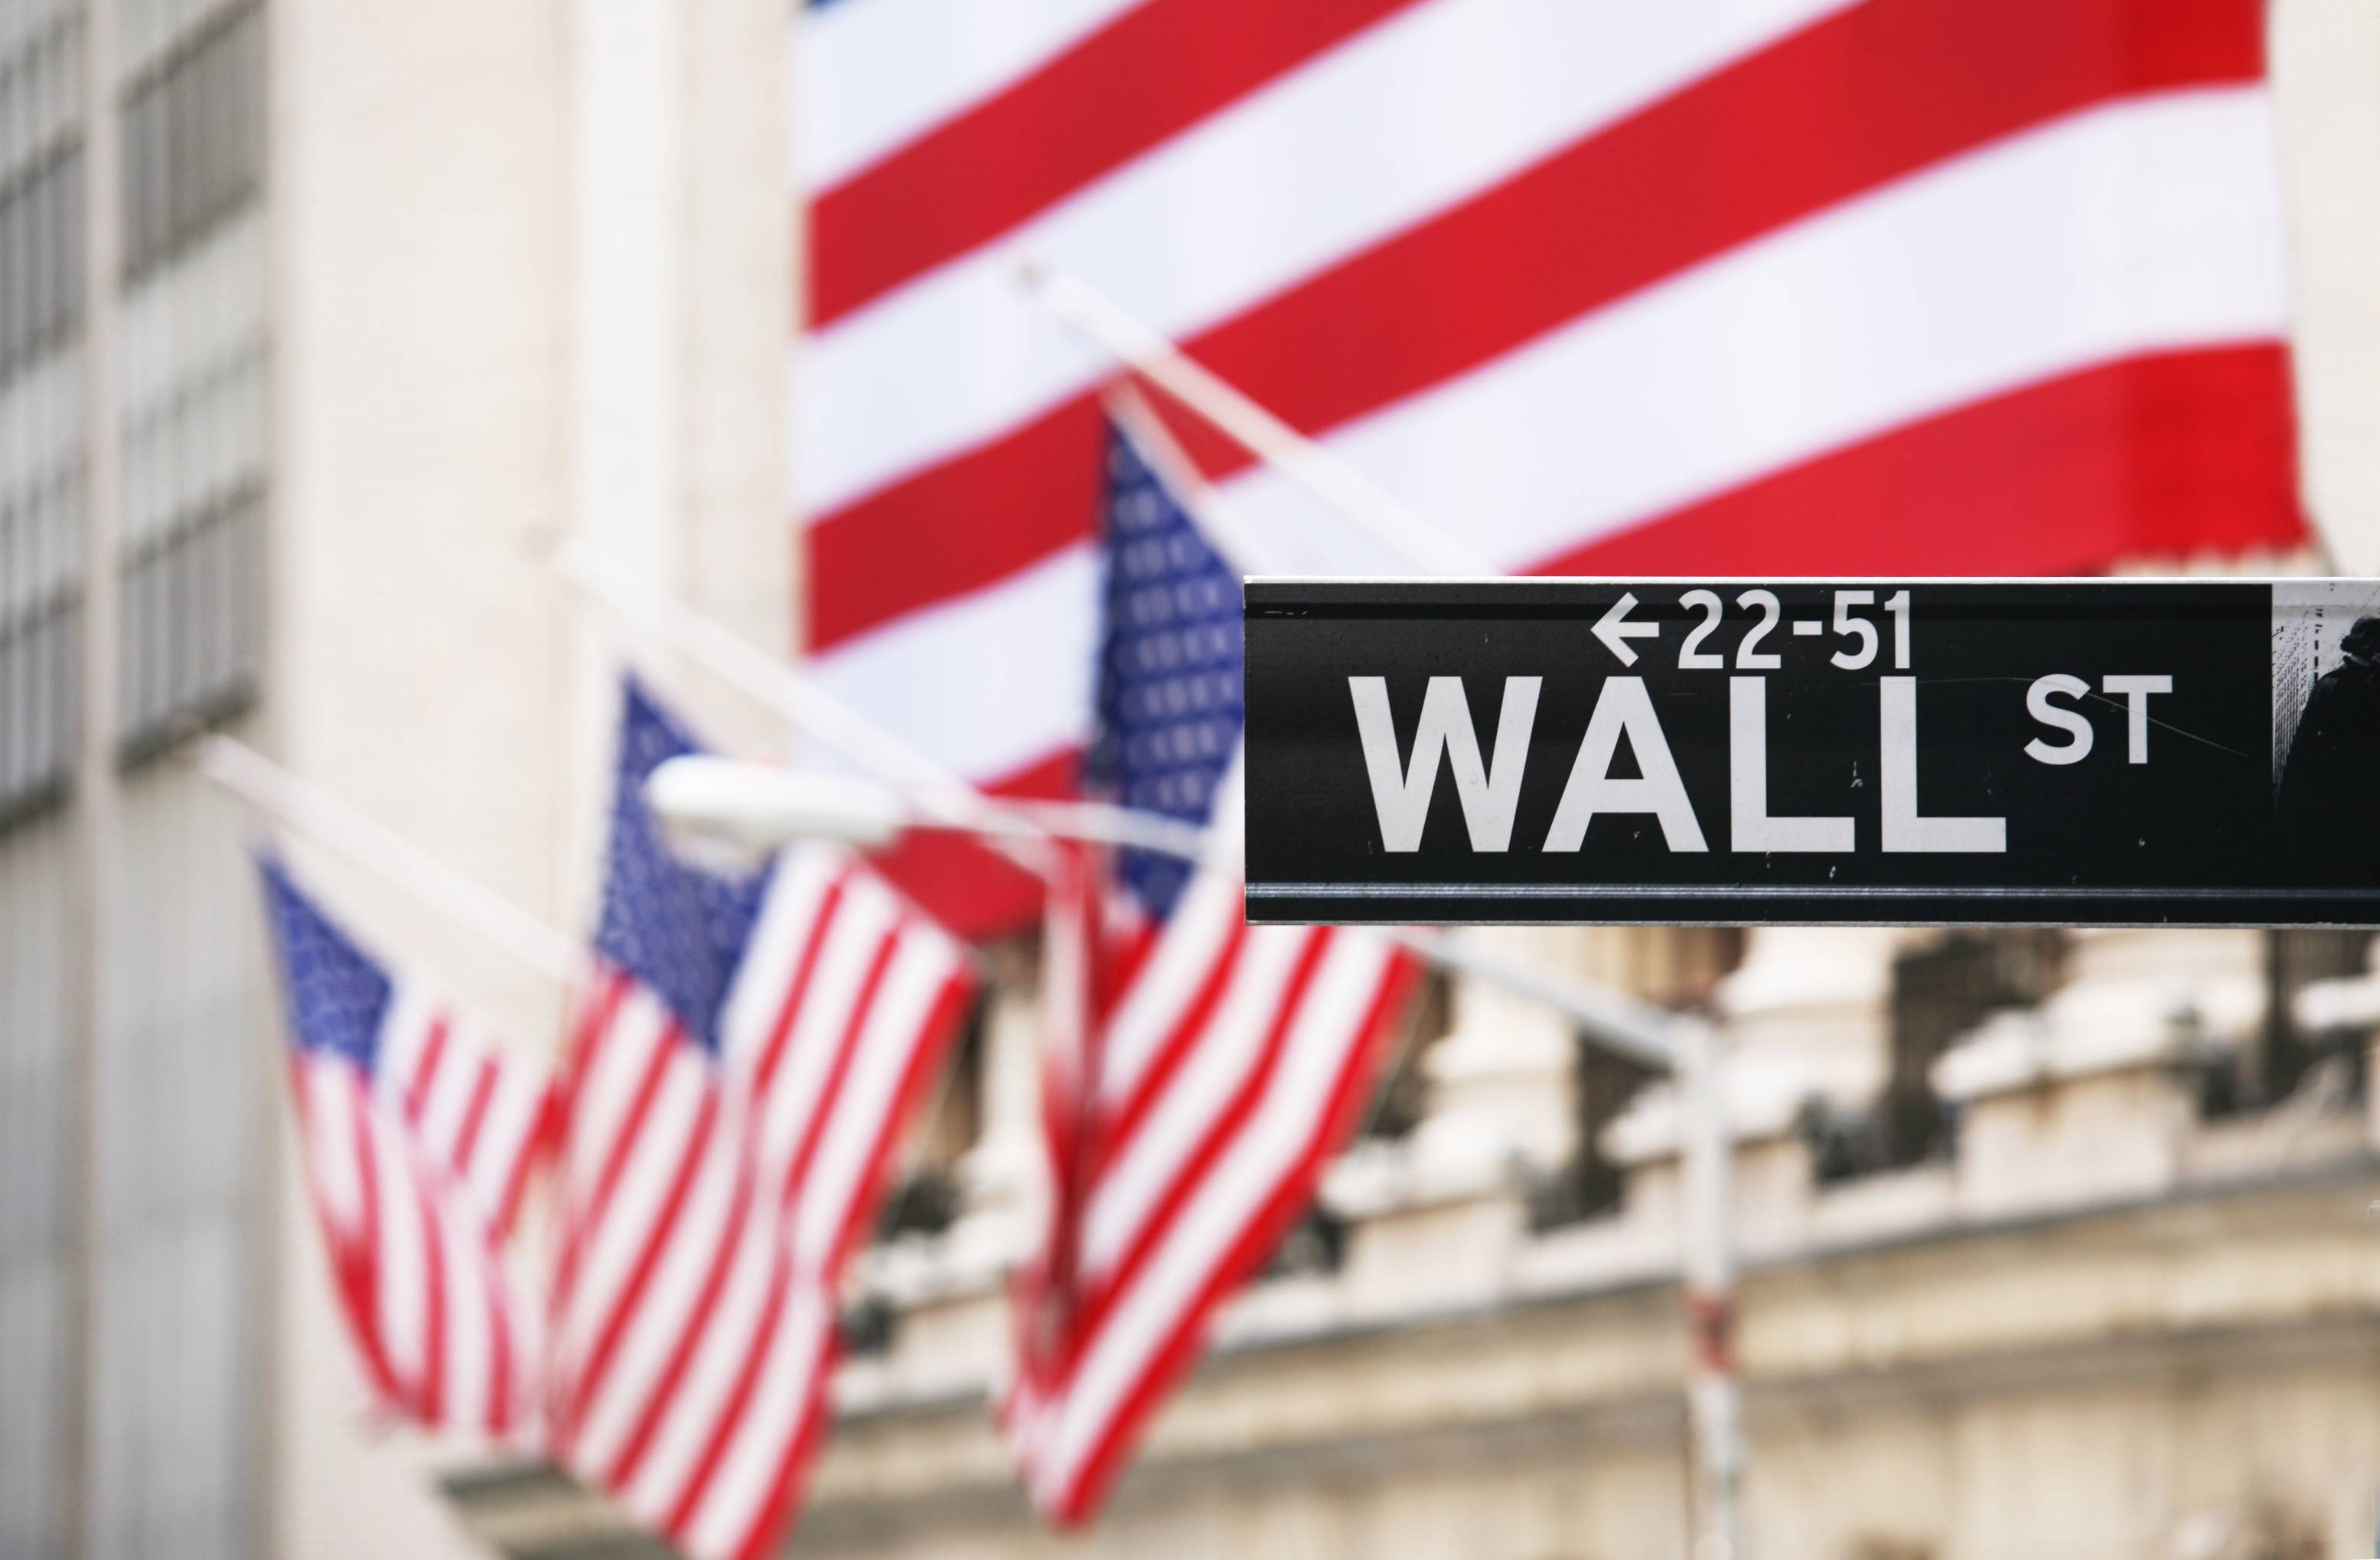 Update: Futures reverse with the Dow Jones likely to open lower